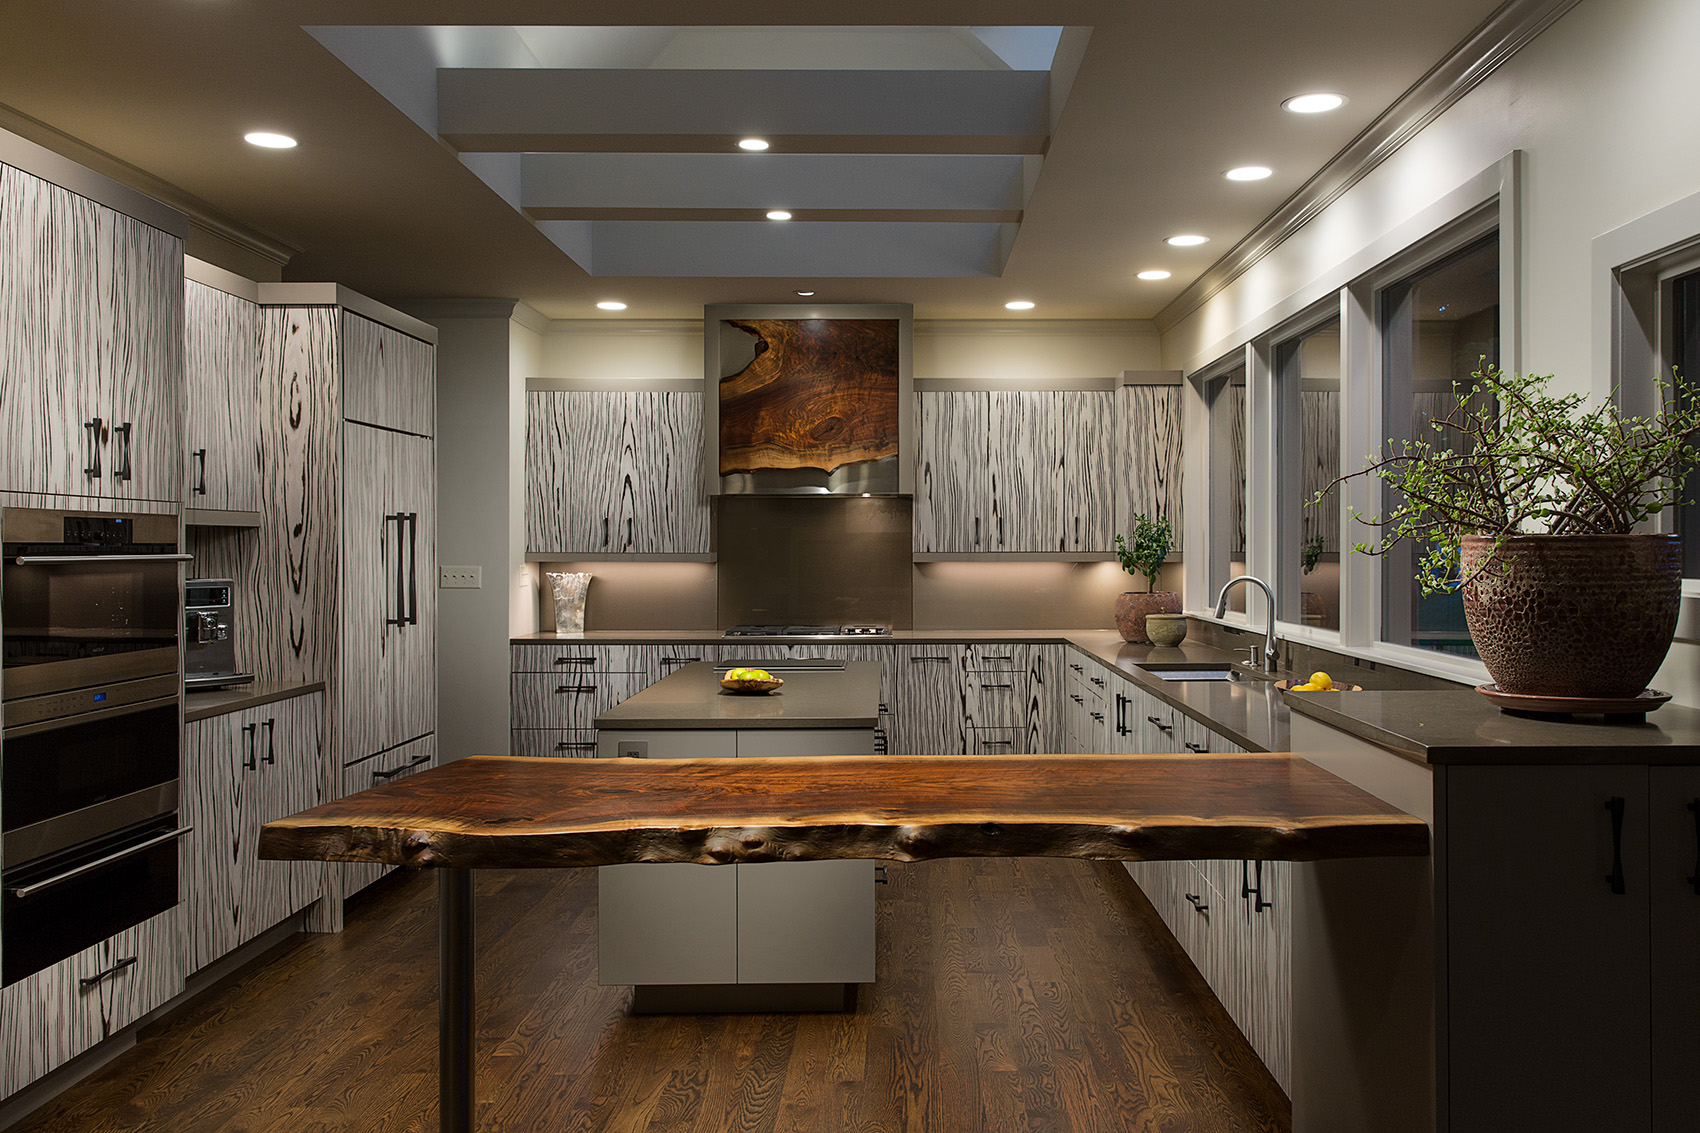 Schloegel Remodel & Design - Kitchen